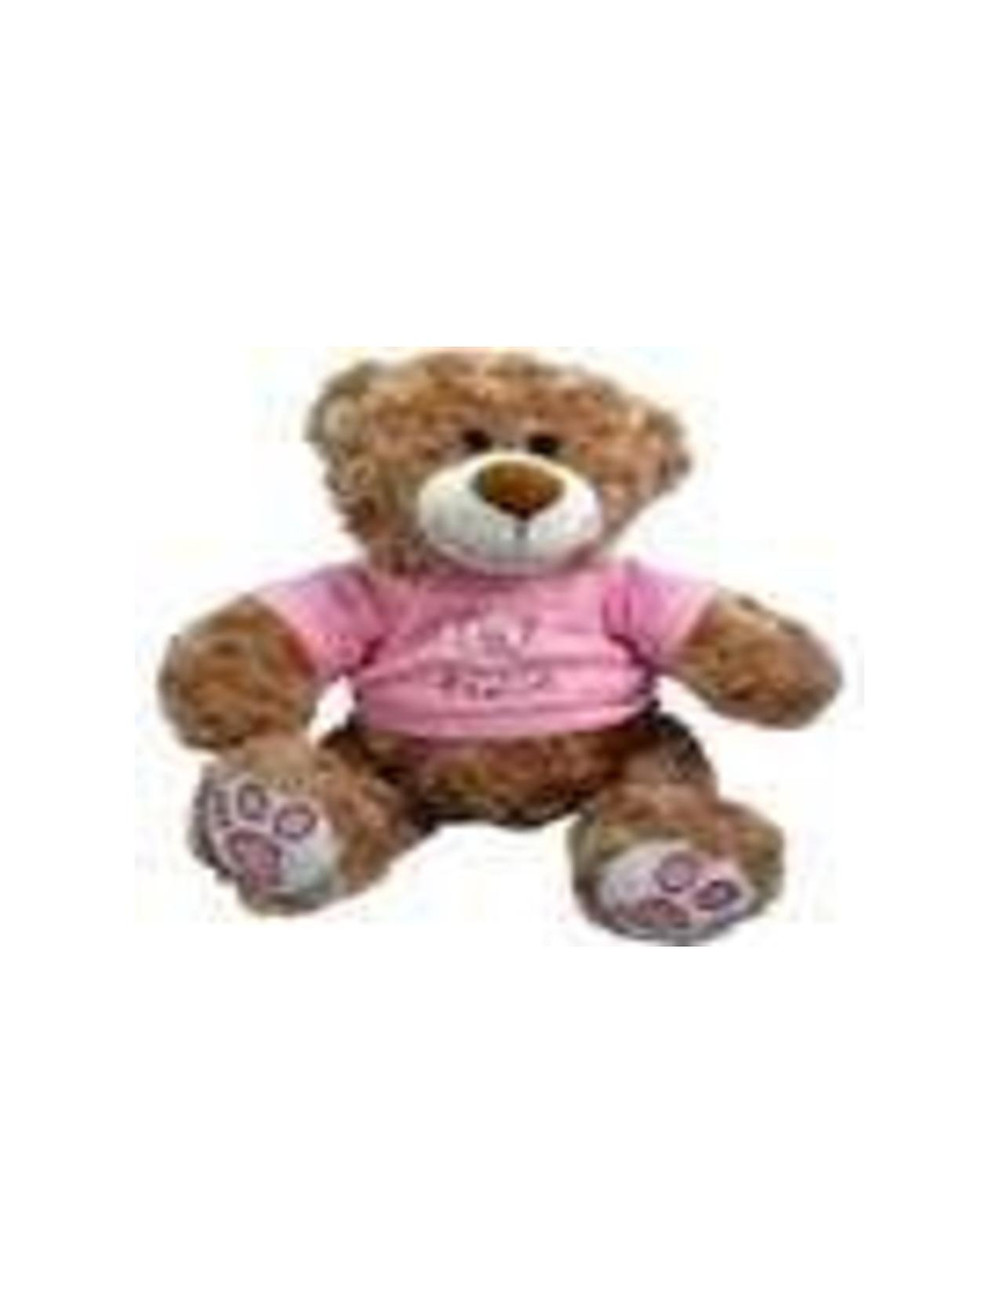 Having a baby girl or know someone that is? Get them this celbratory teddy bear for their newborn!